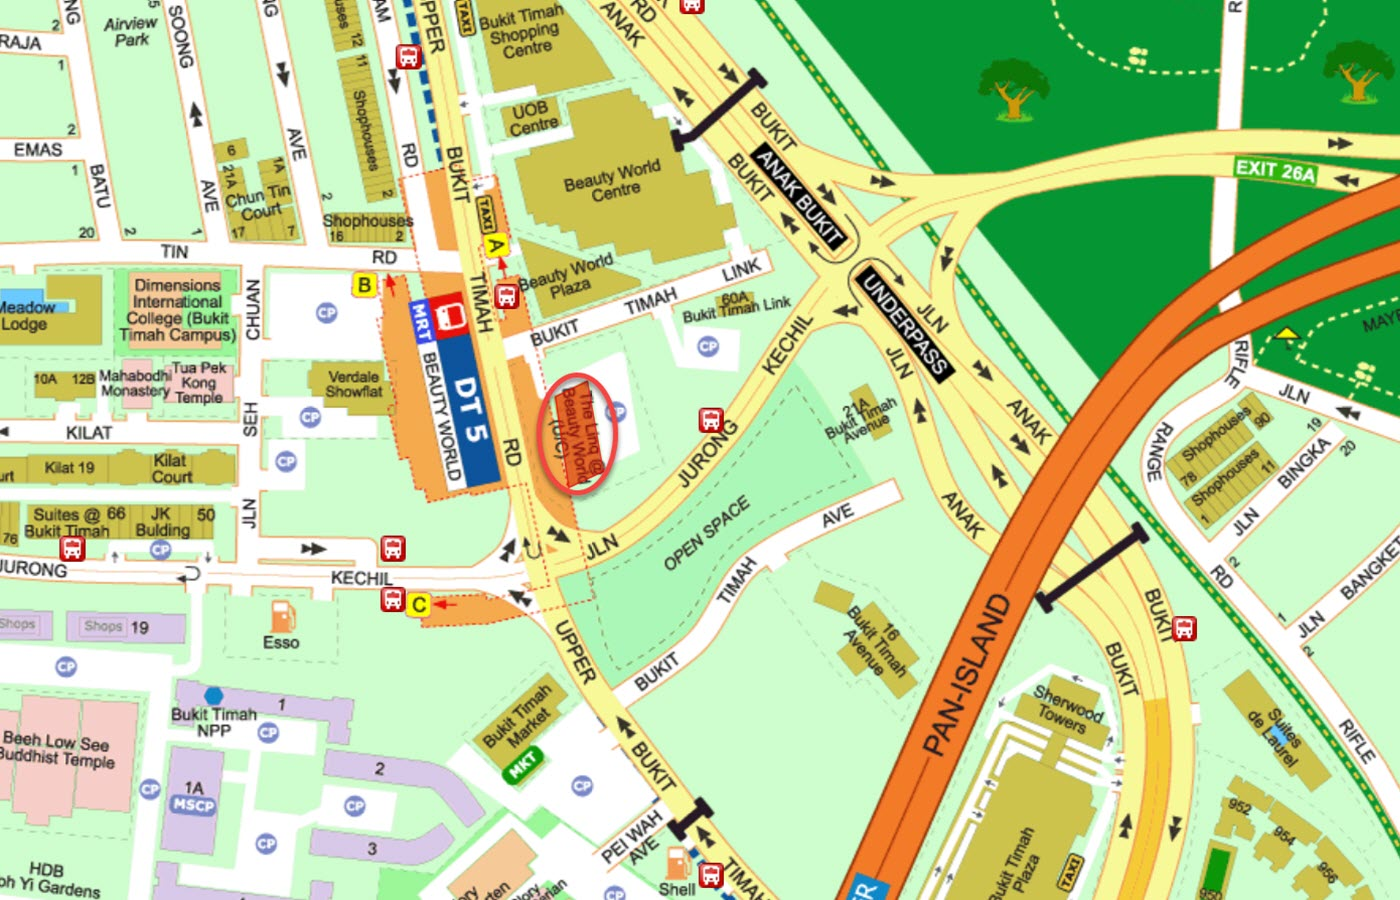 The Linq At Beauty World Condo Location - Street Directory Map